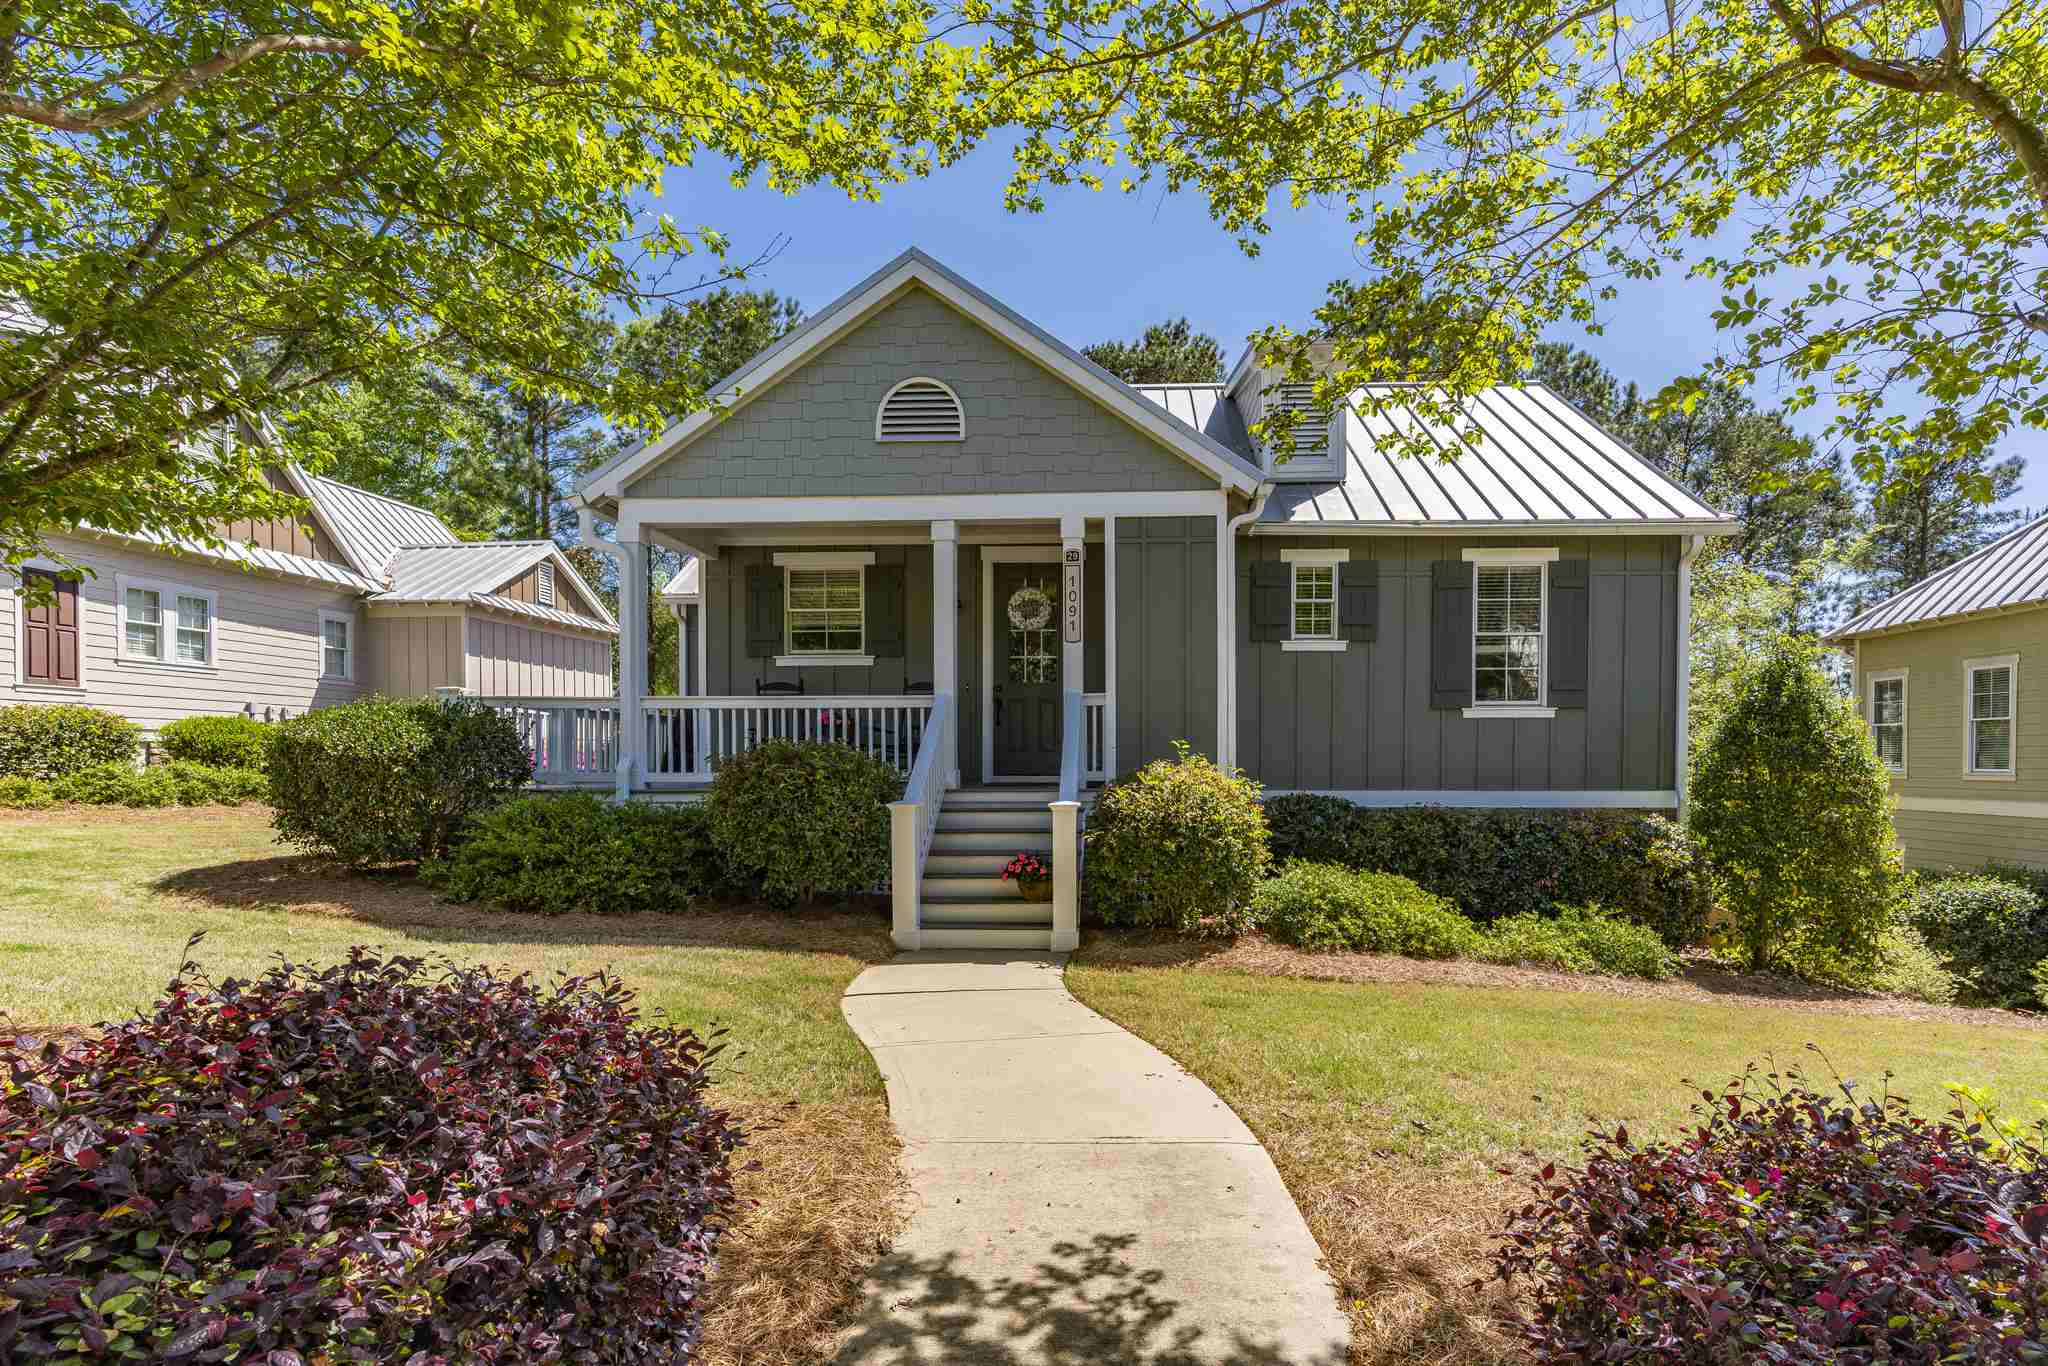 1091 STARBOARD DRIVE, Lake Oconee Reynolds Landing in Greene County, GA 30642 Home for Sale